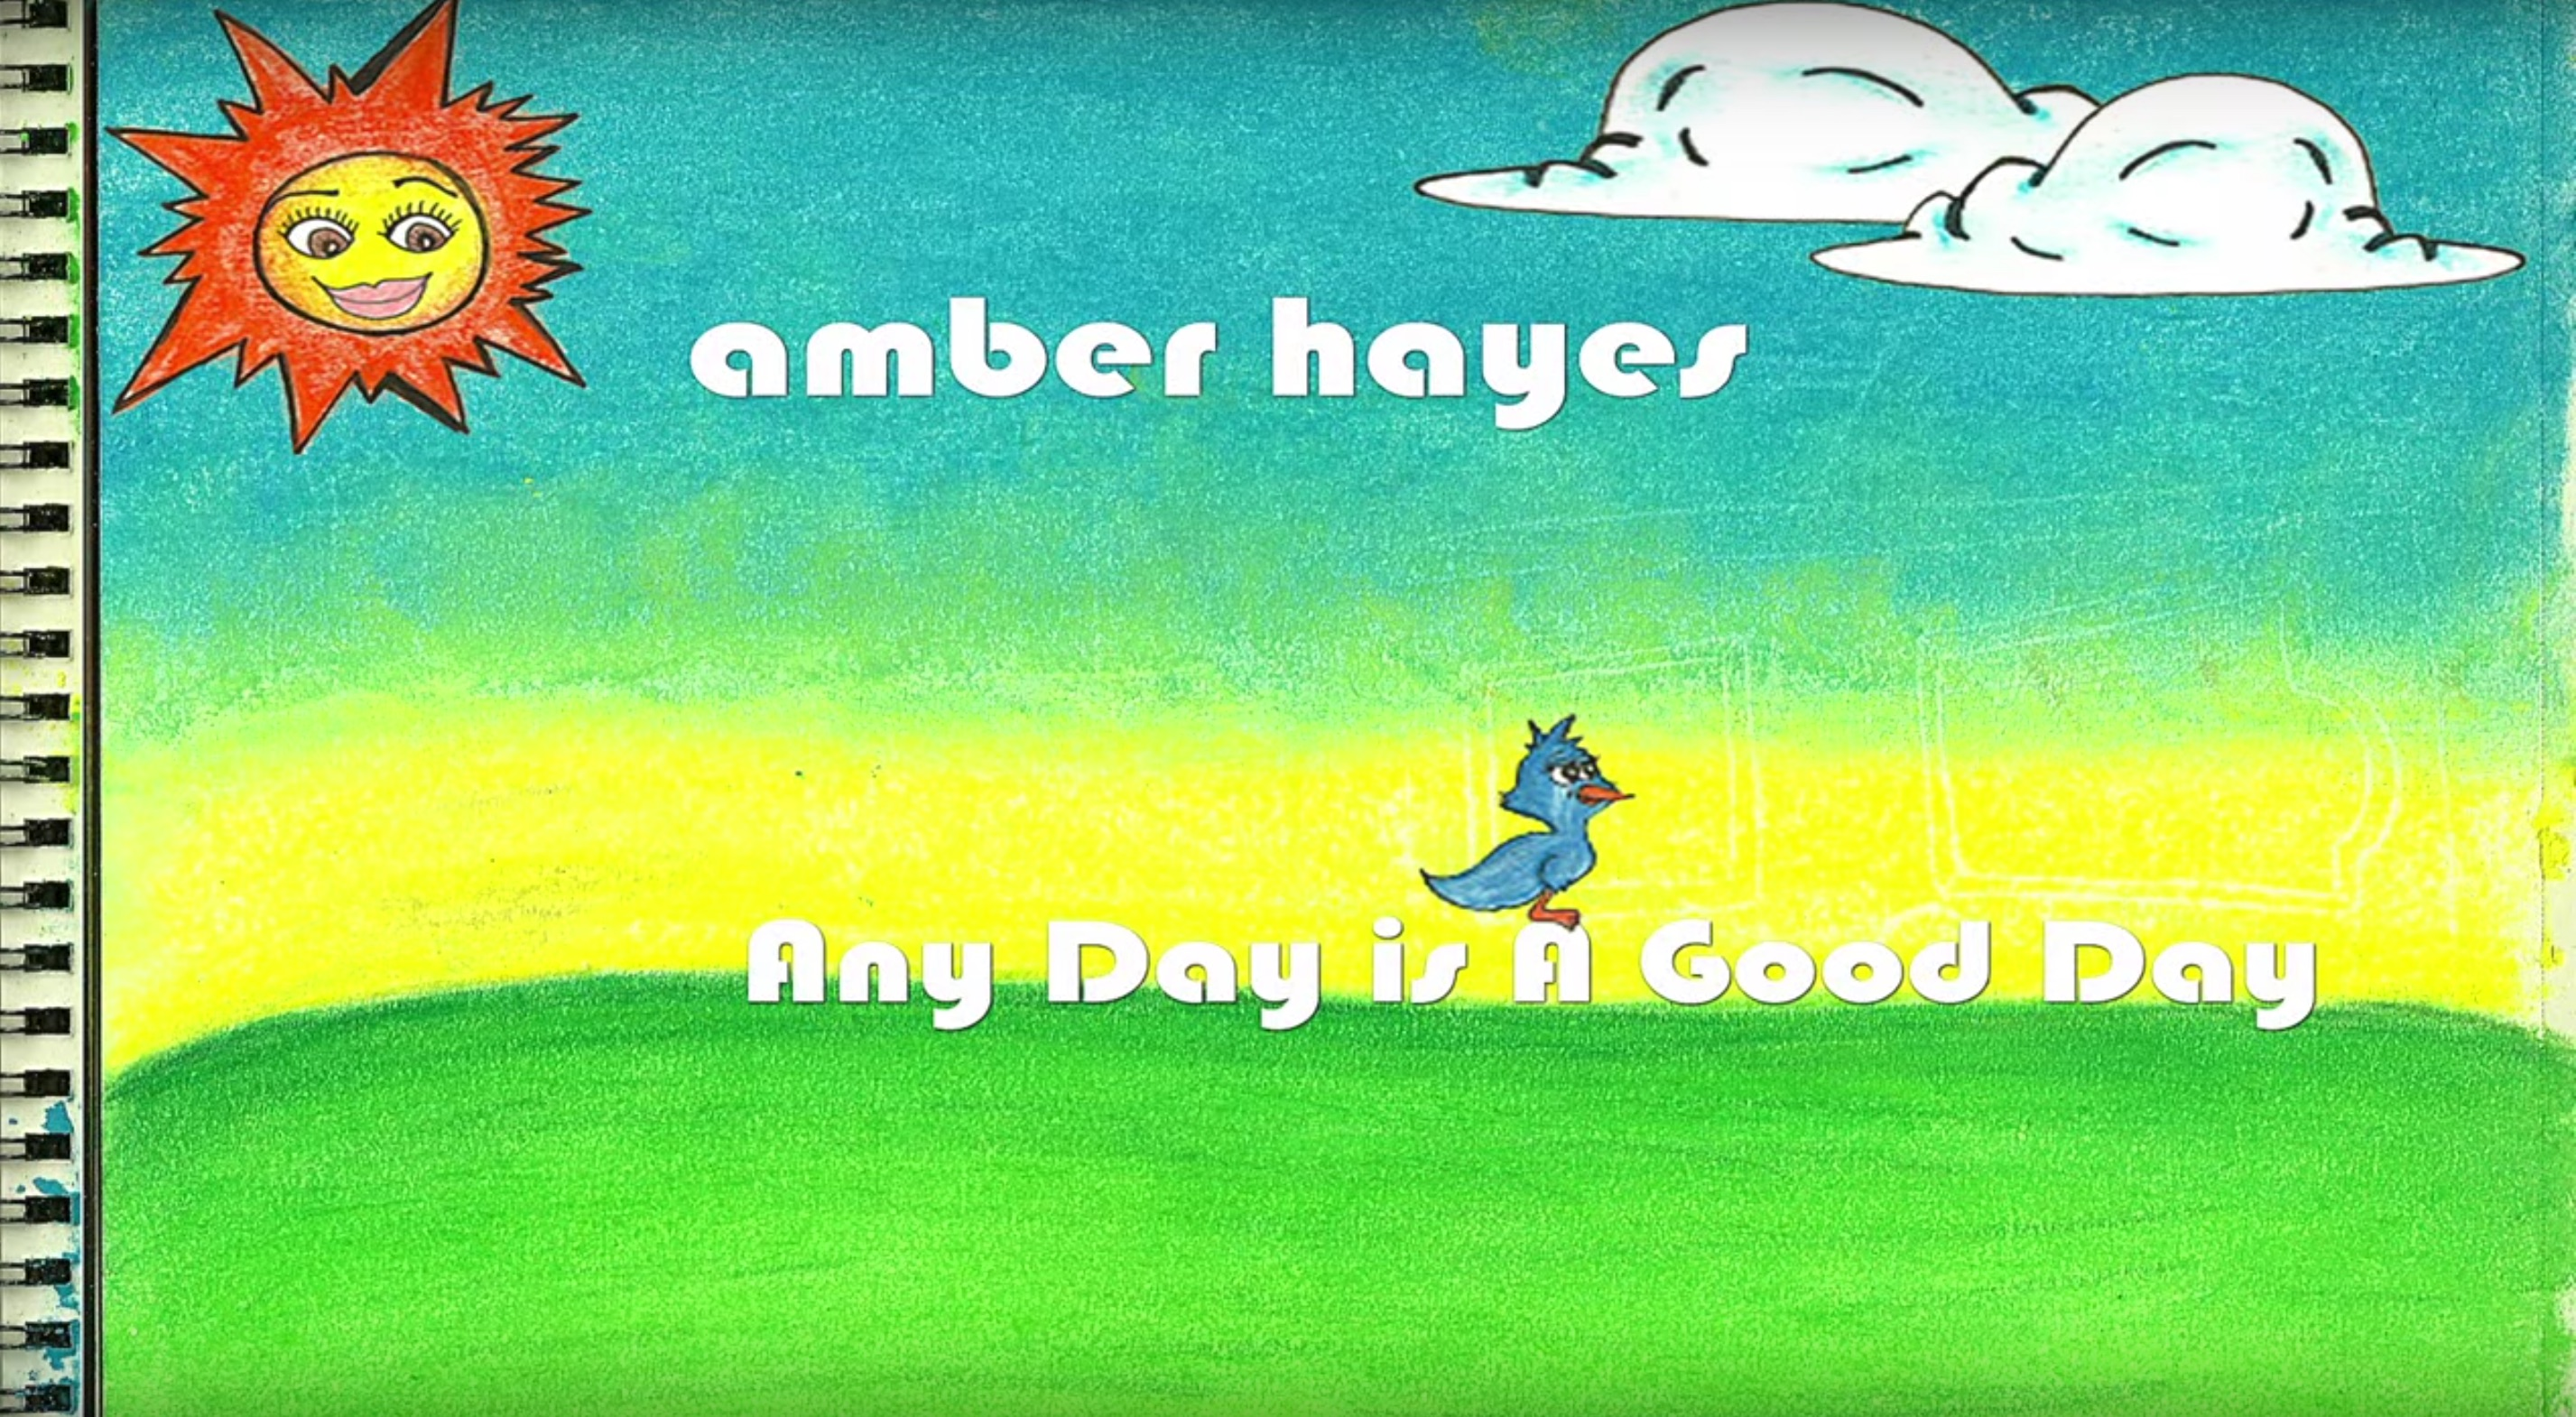 amberhayes_anyday